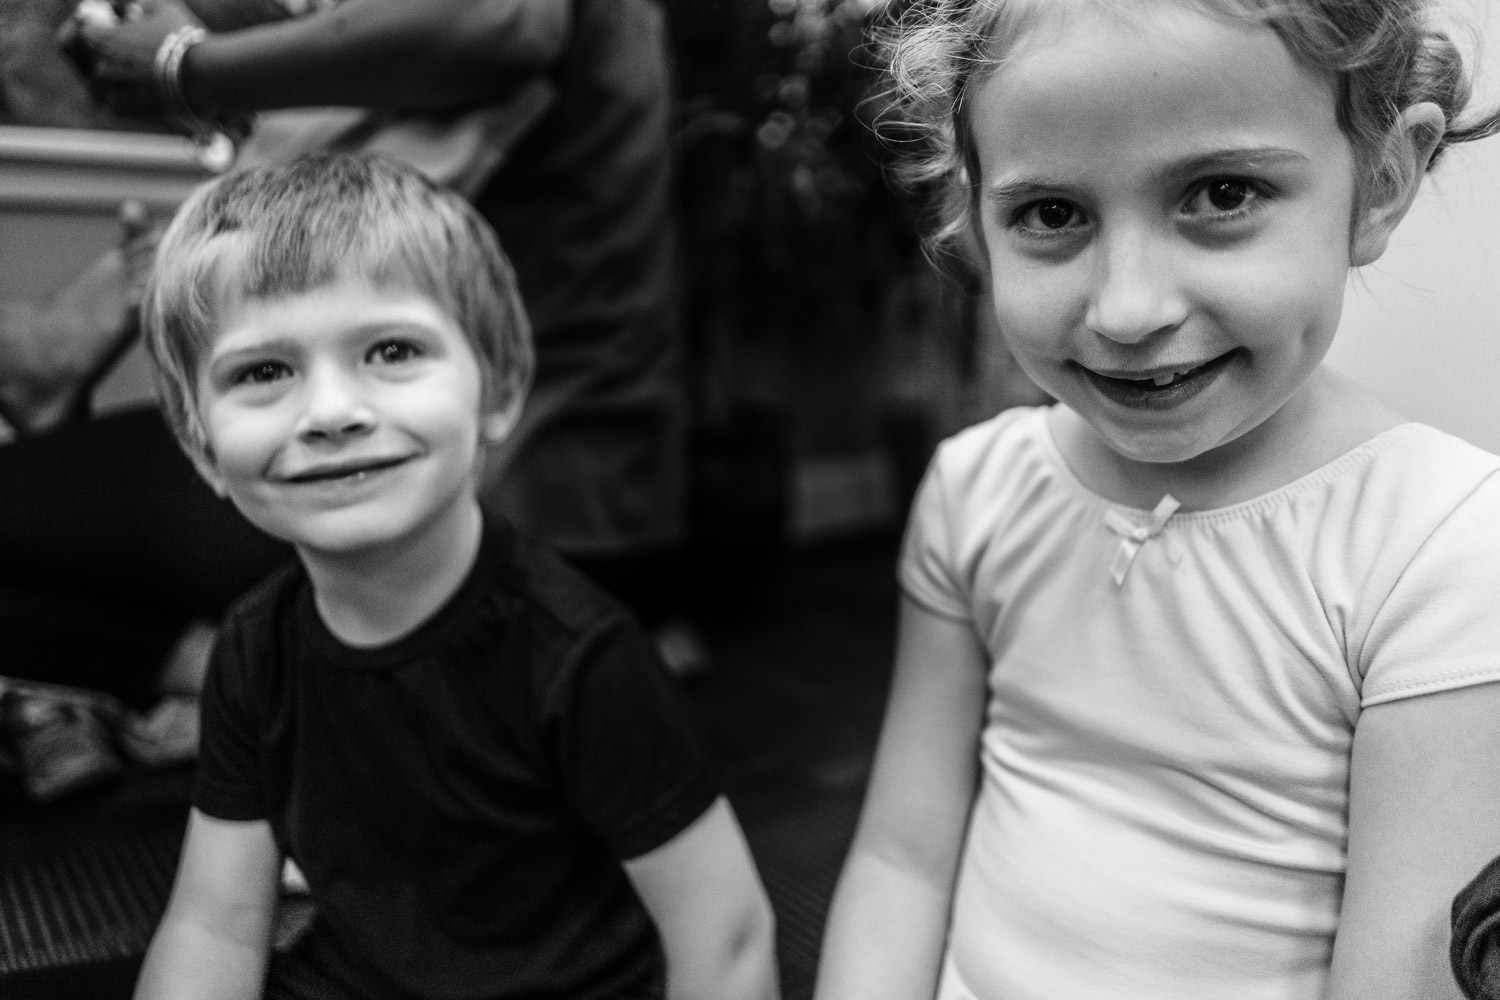 A little boy and girl smile at the camera before their dance class.